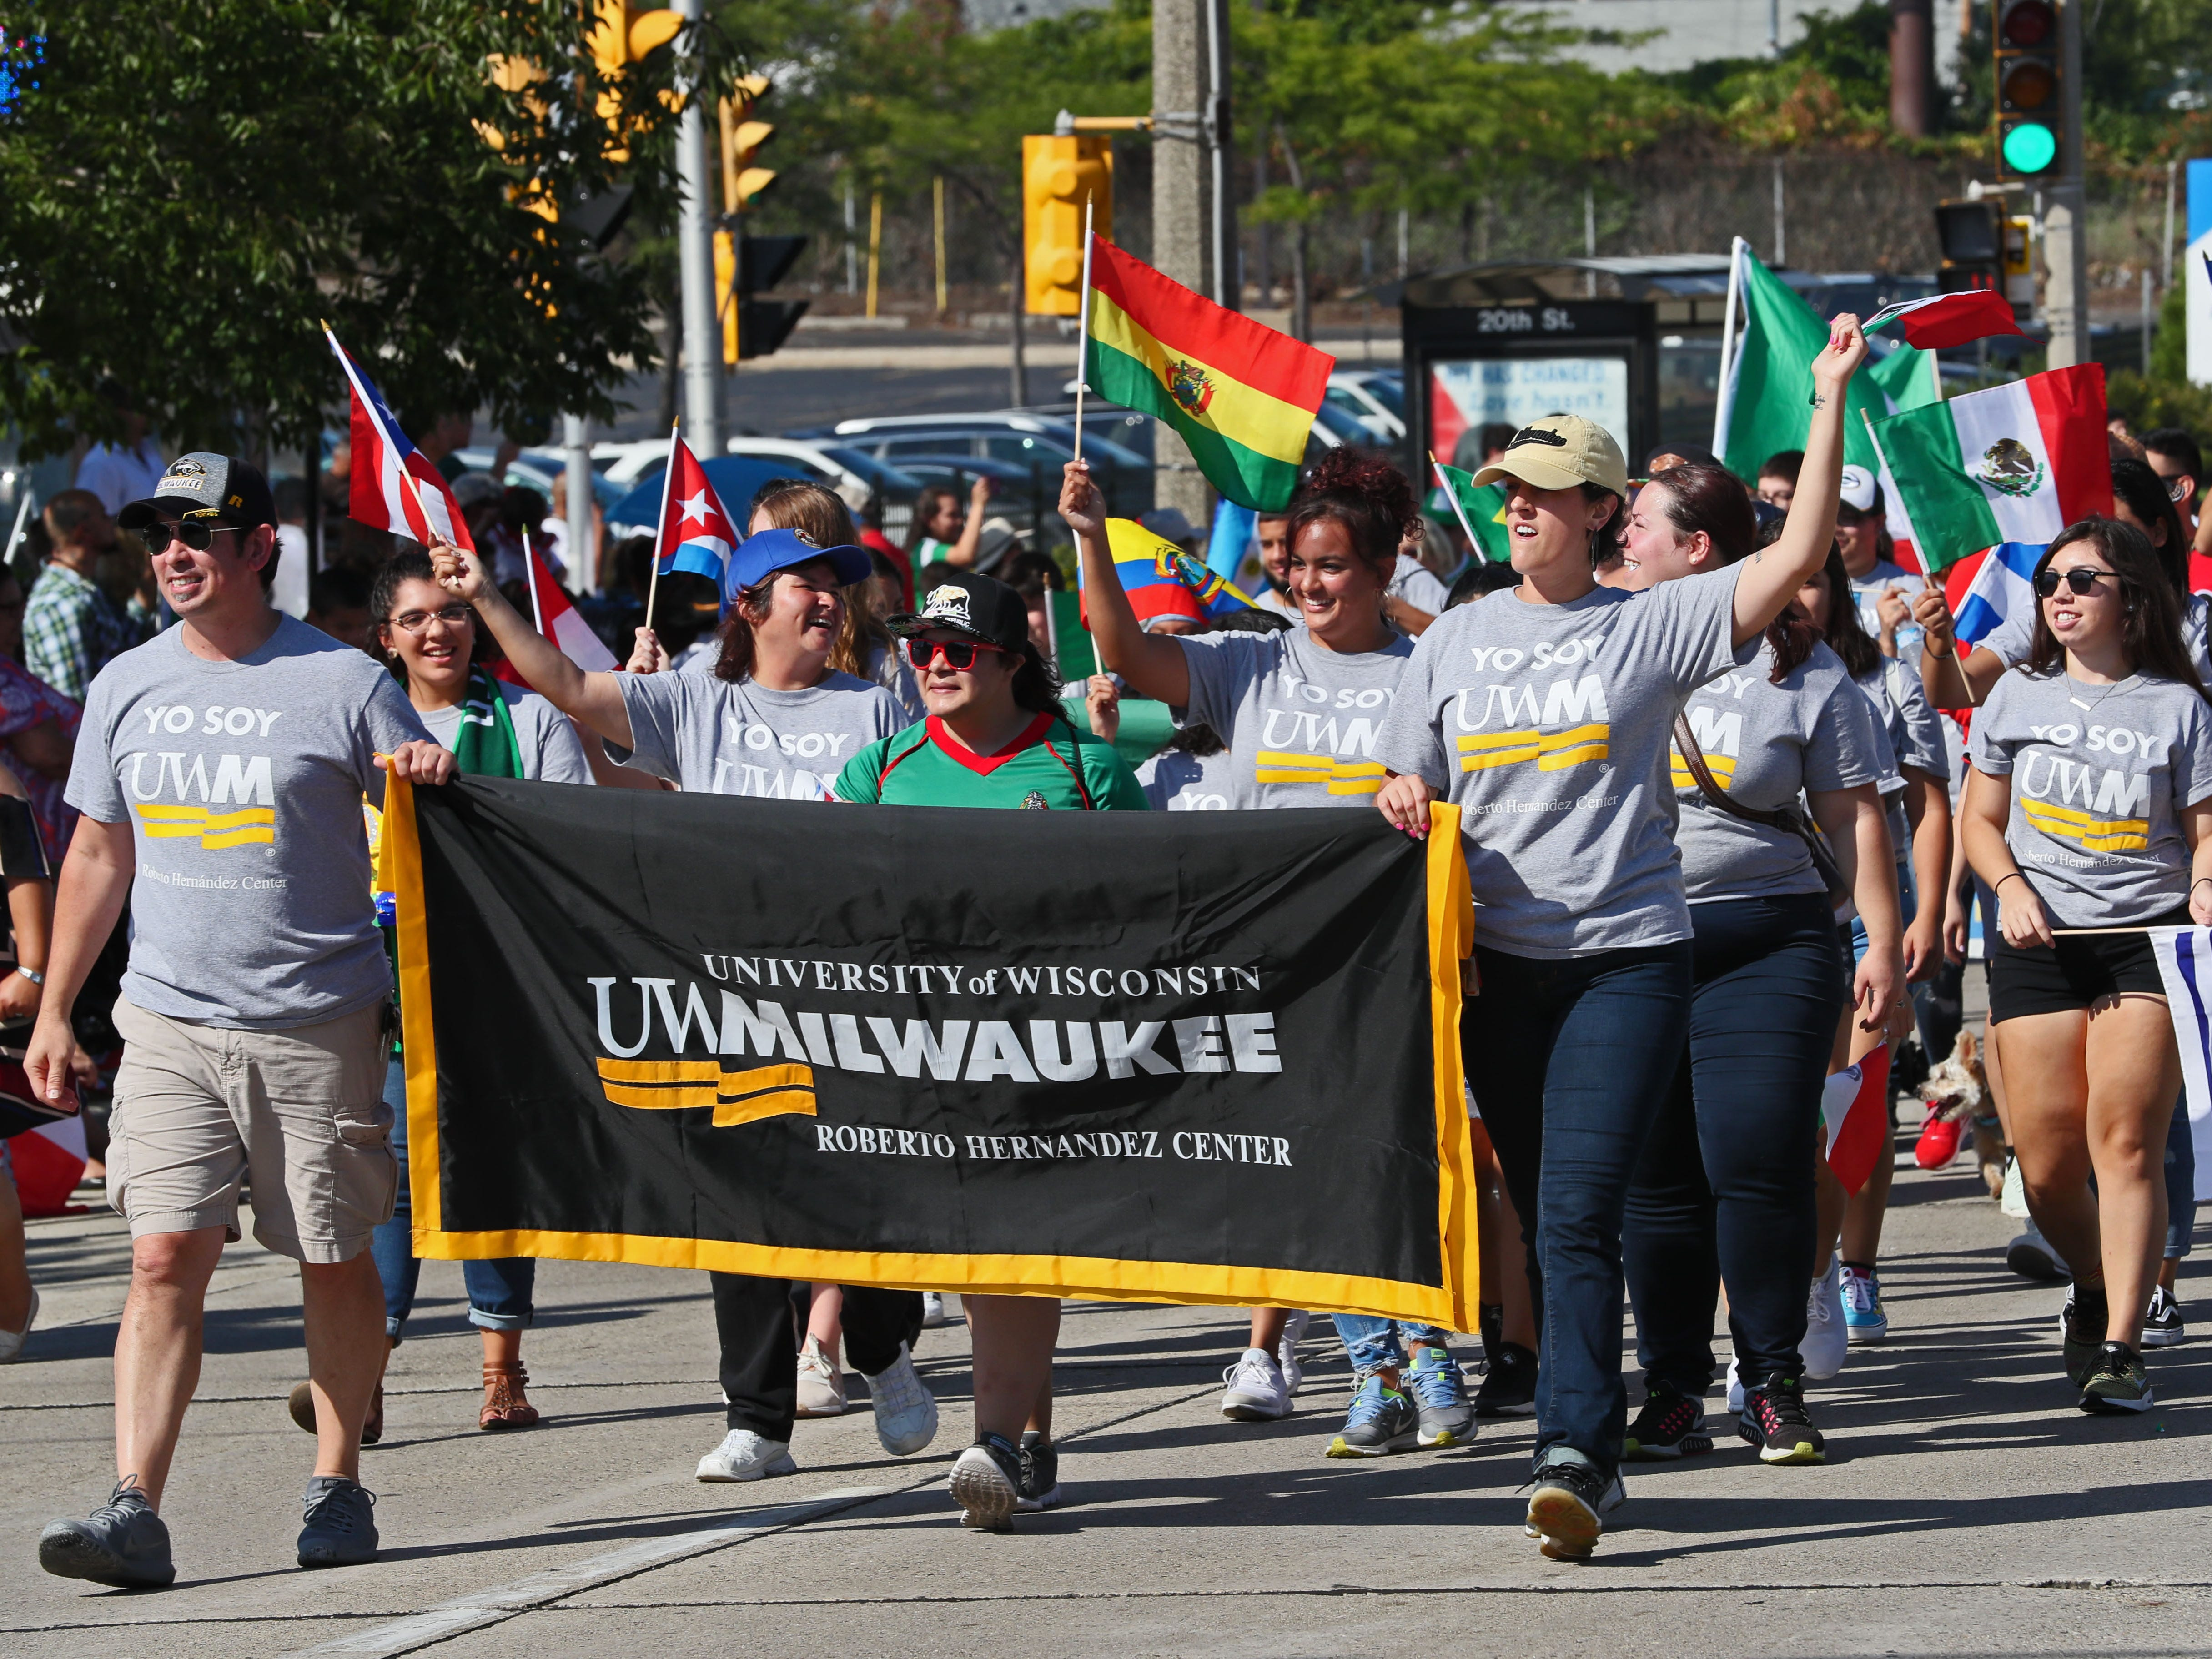 A group representing the University of Wisconsin-Milwaukee marches in the parade.